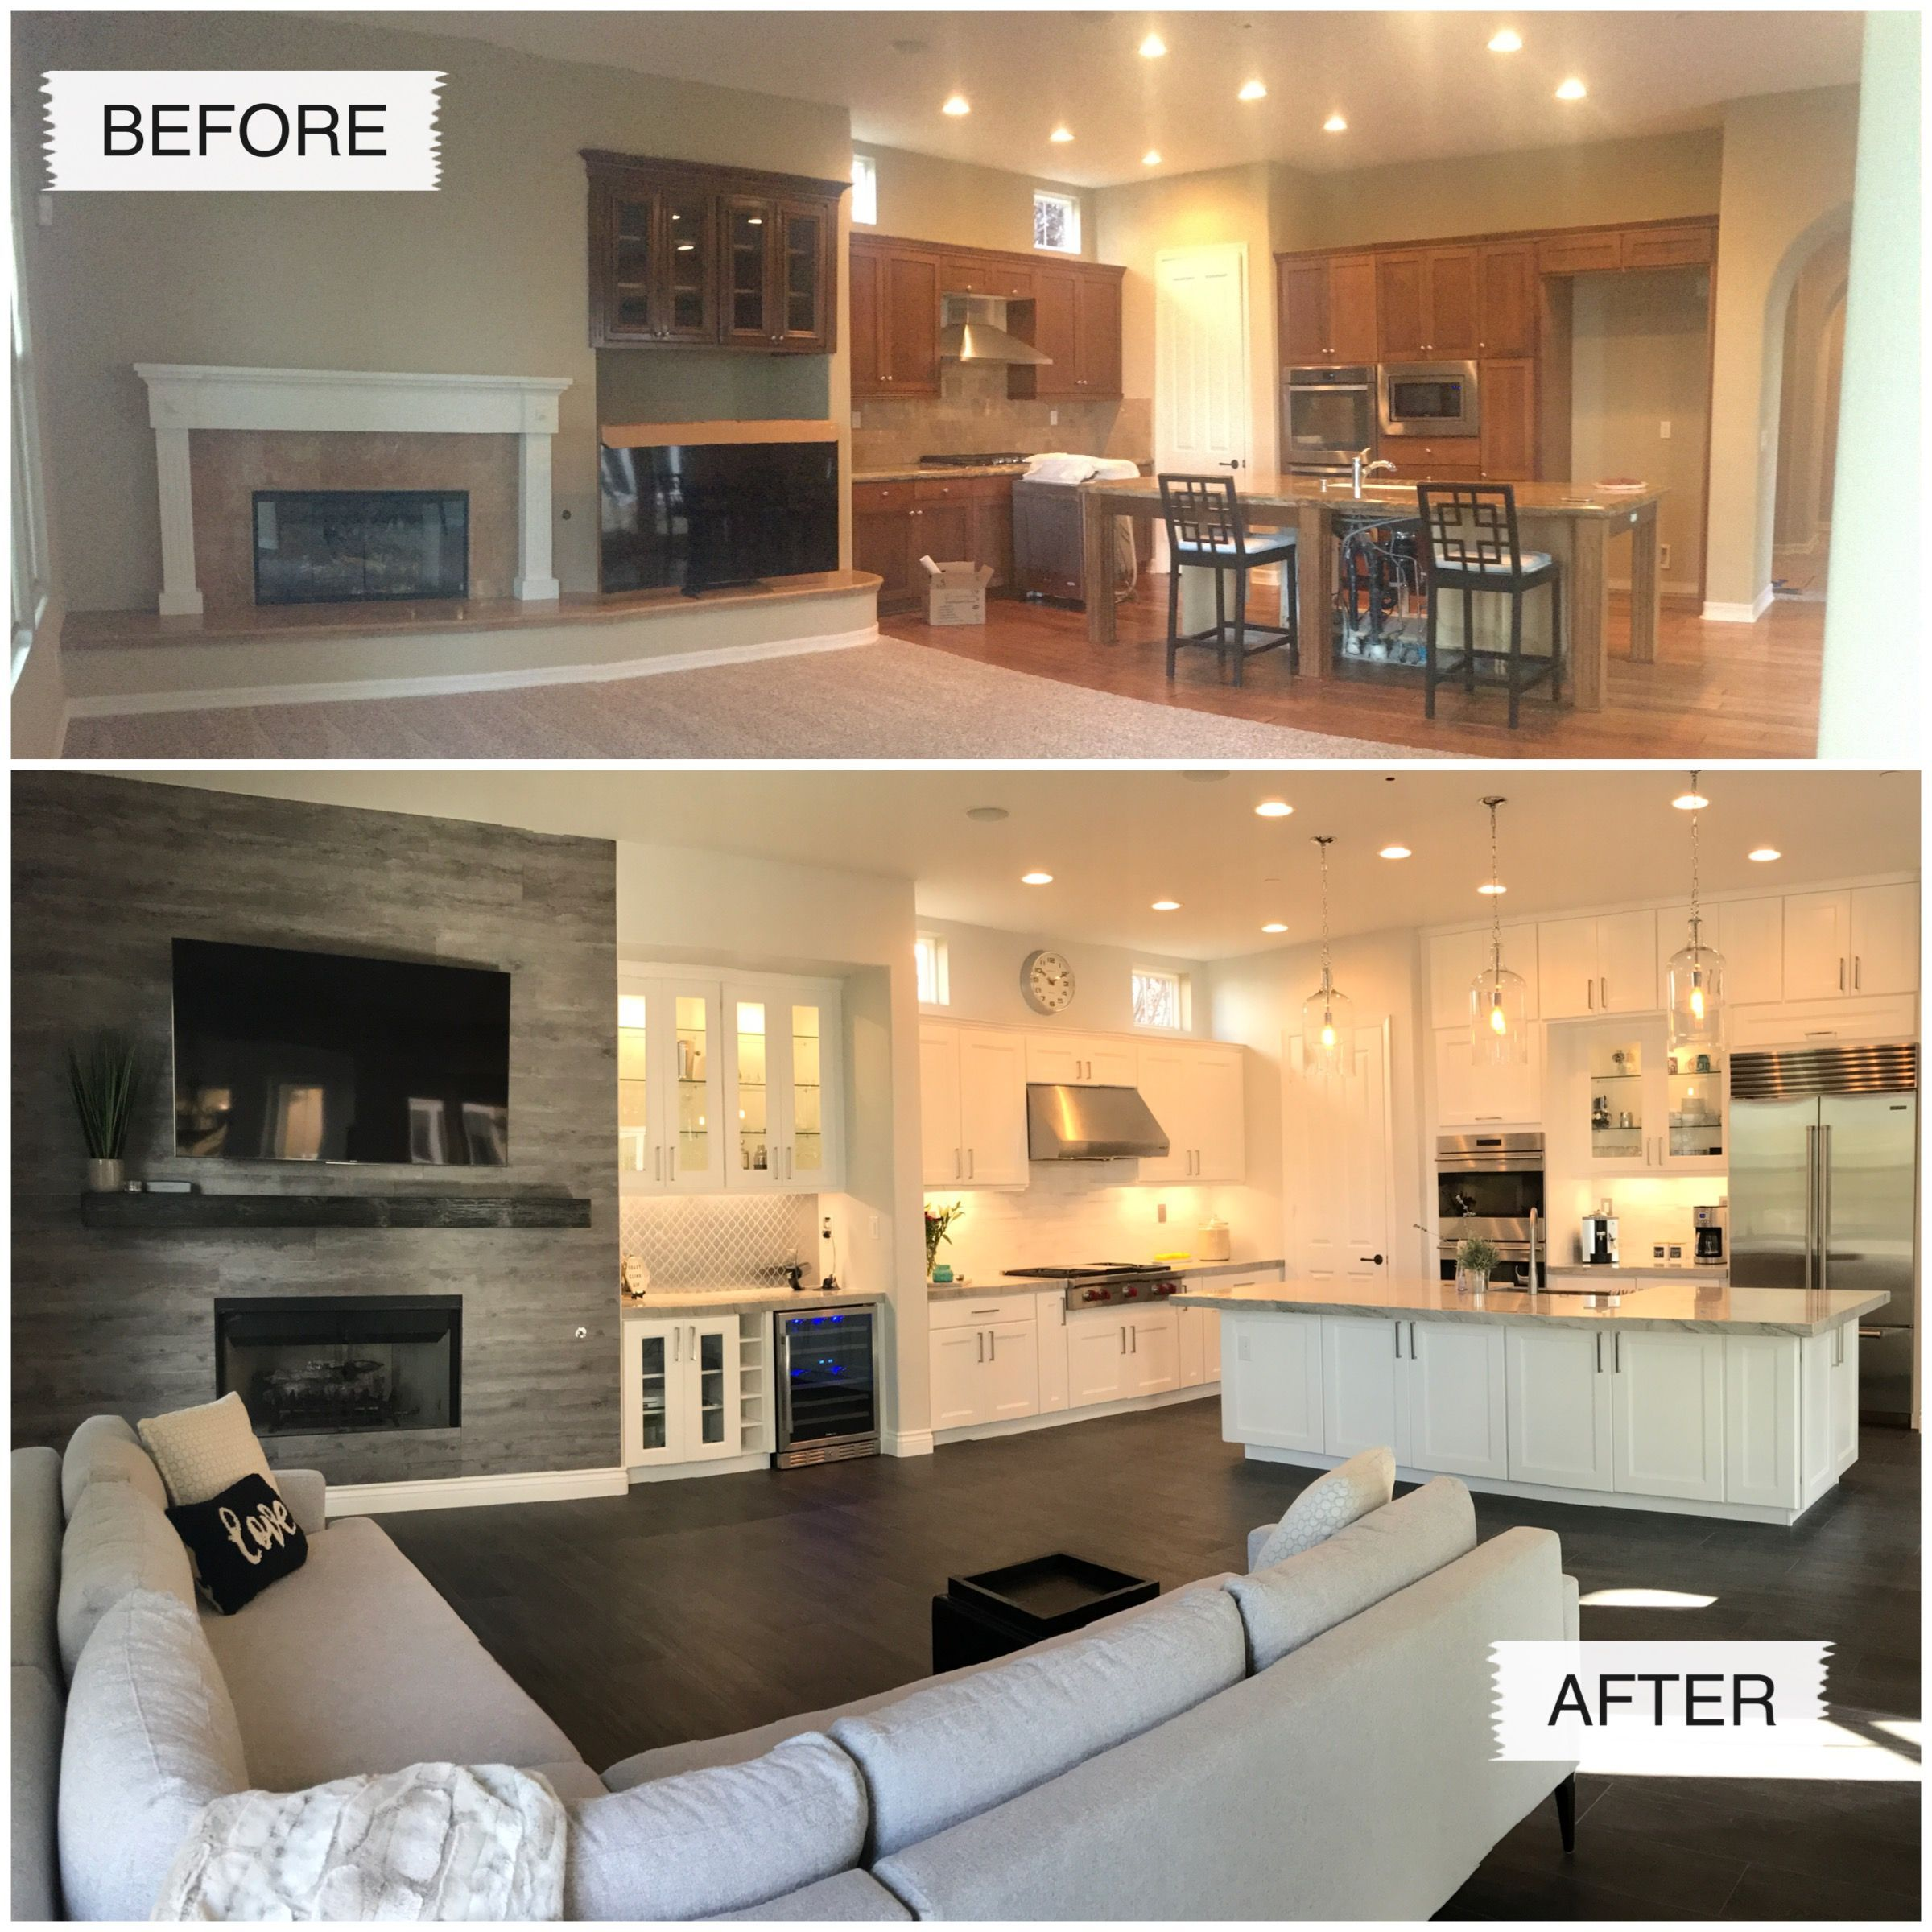 Before And After Pictures Of Our Kitchen Remodel Home Remodeling Living Room Remodel Home Renovation Remodel living room and kitchen